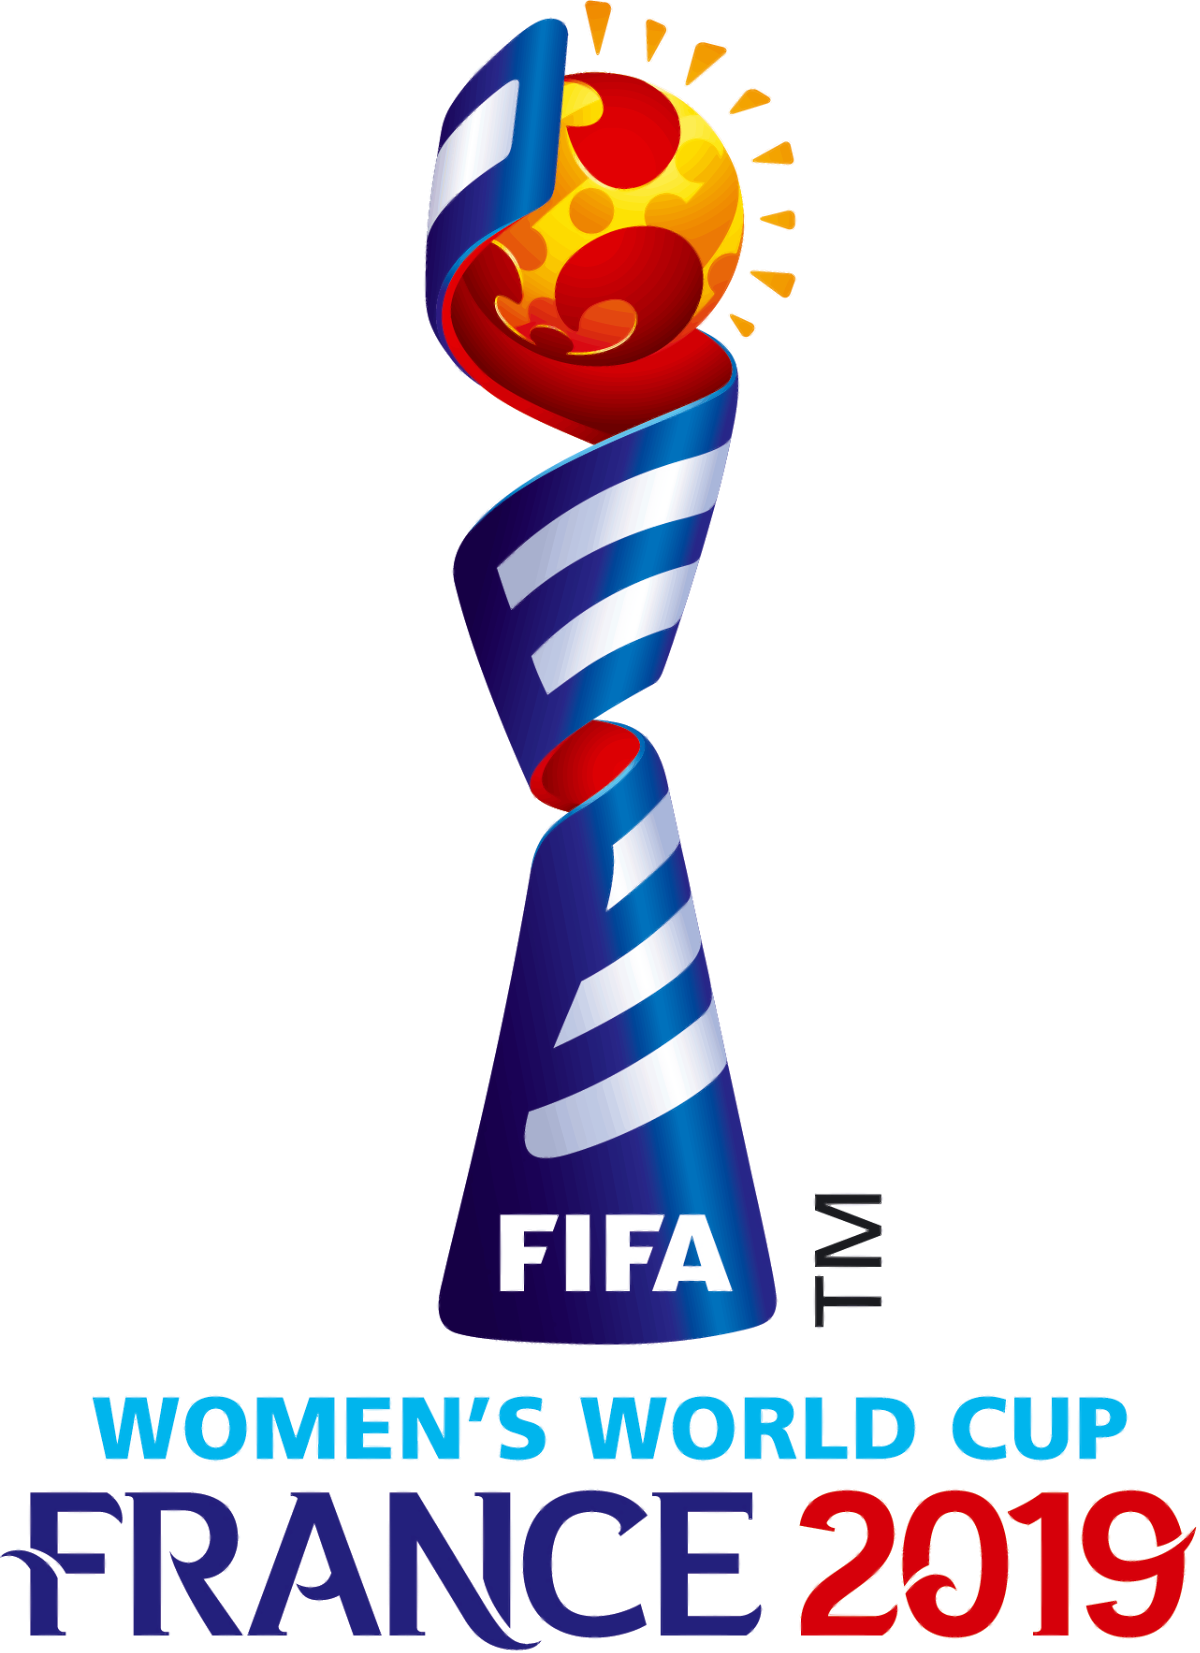 The Year 2018 Was A Spectacular Year In Football It Was A Memorable Year Which Saw France Lift The 201 Fifa Women S World Cup Women S World Cup World Cup Logo